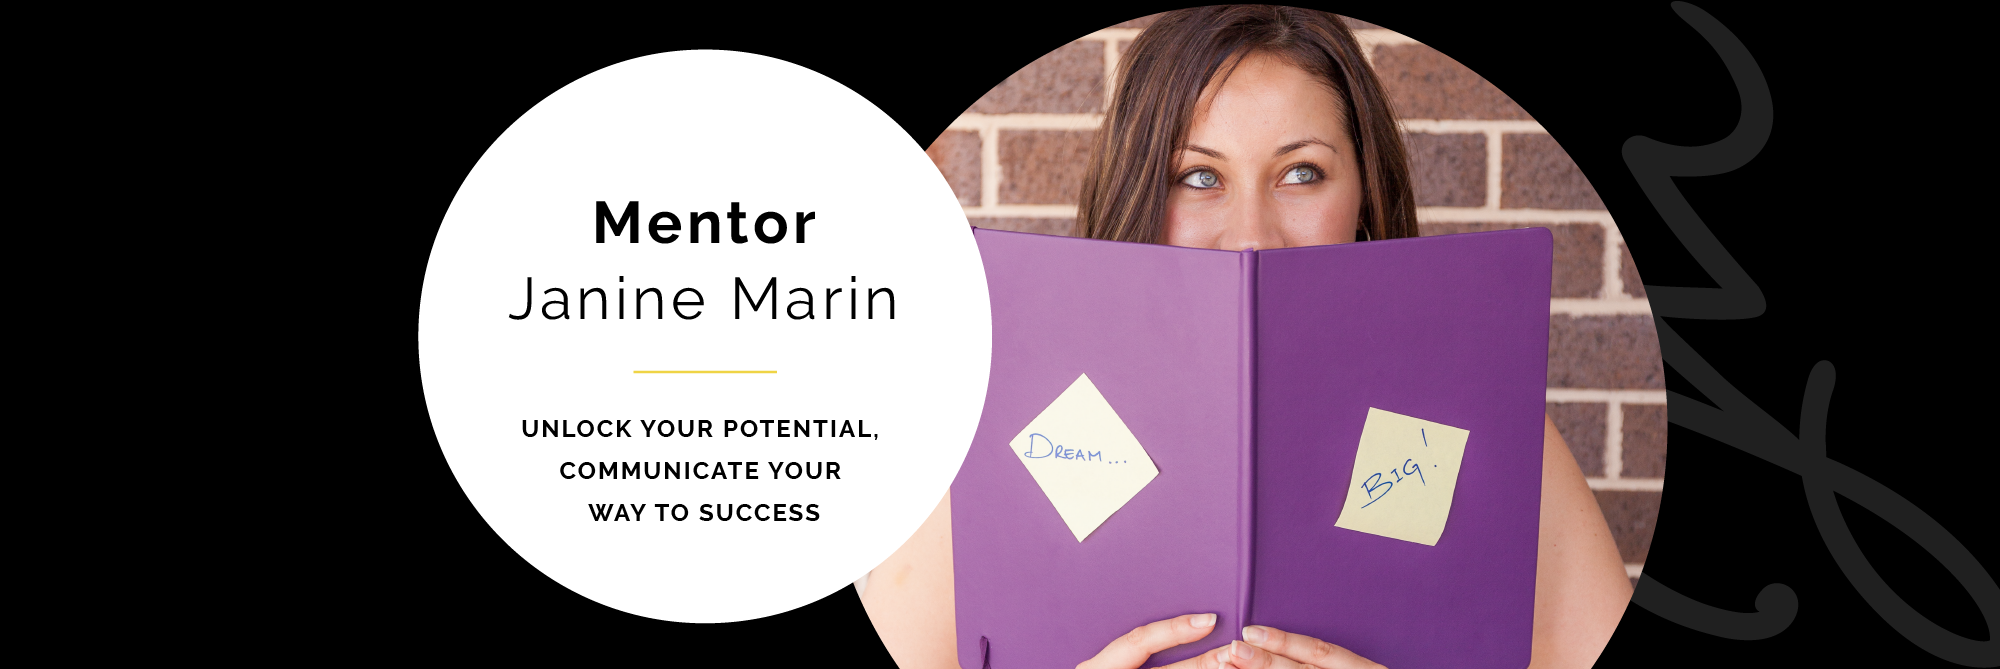 janine-marin-mentoring-Women in marketing and communications leadership program